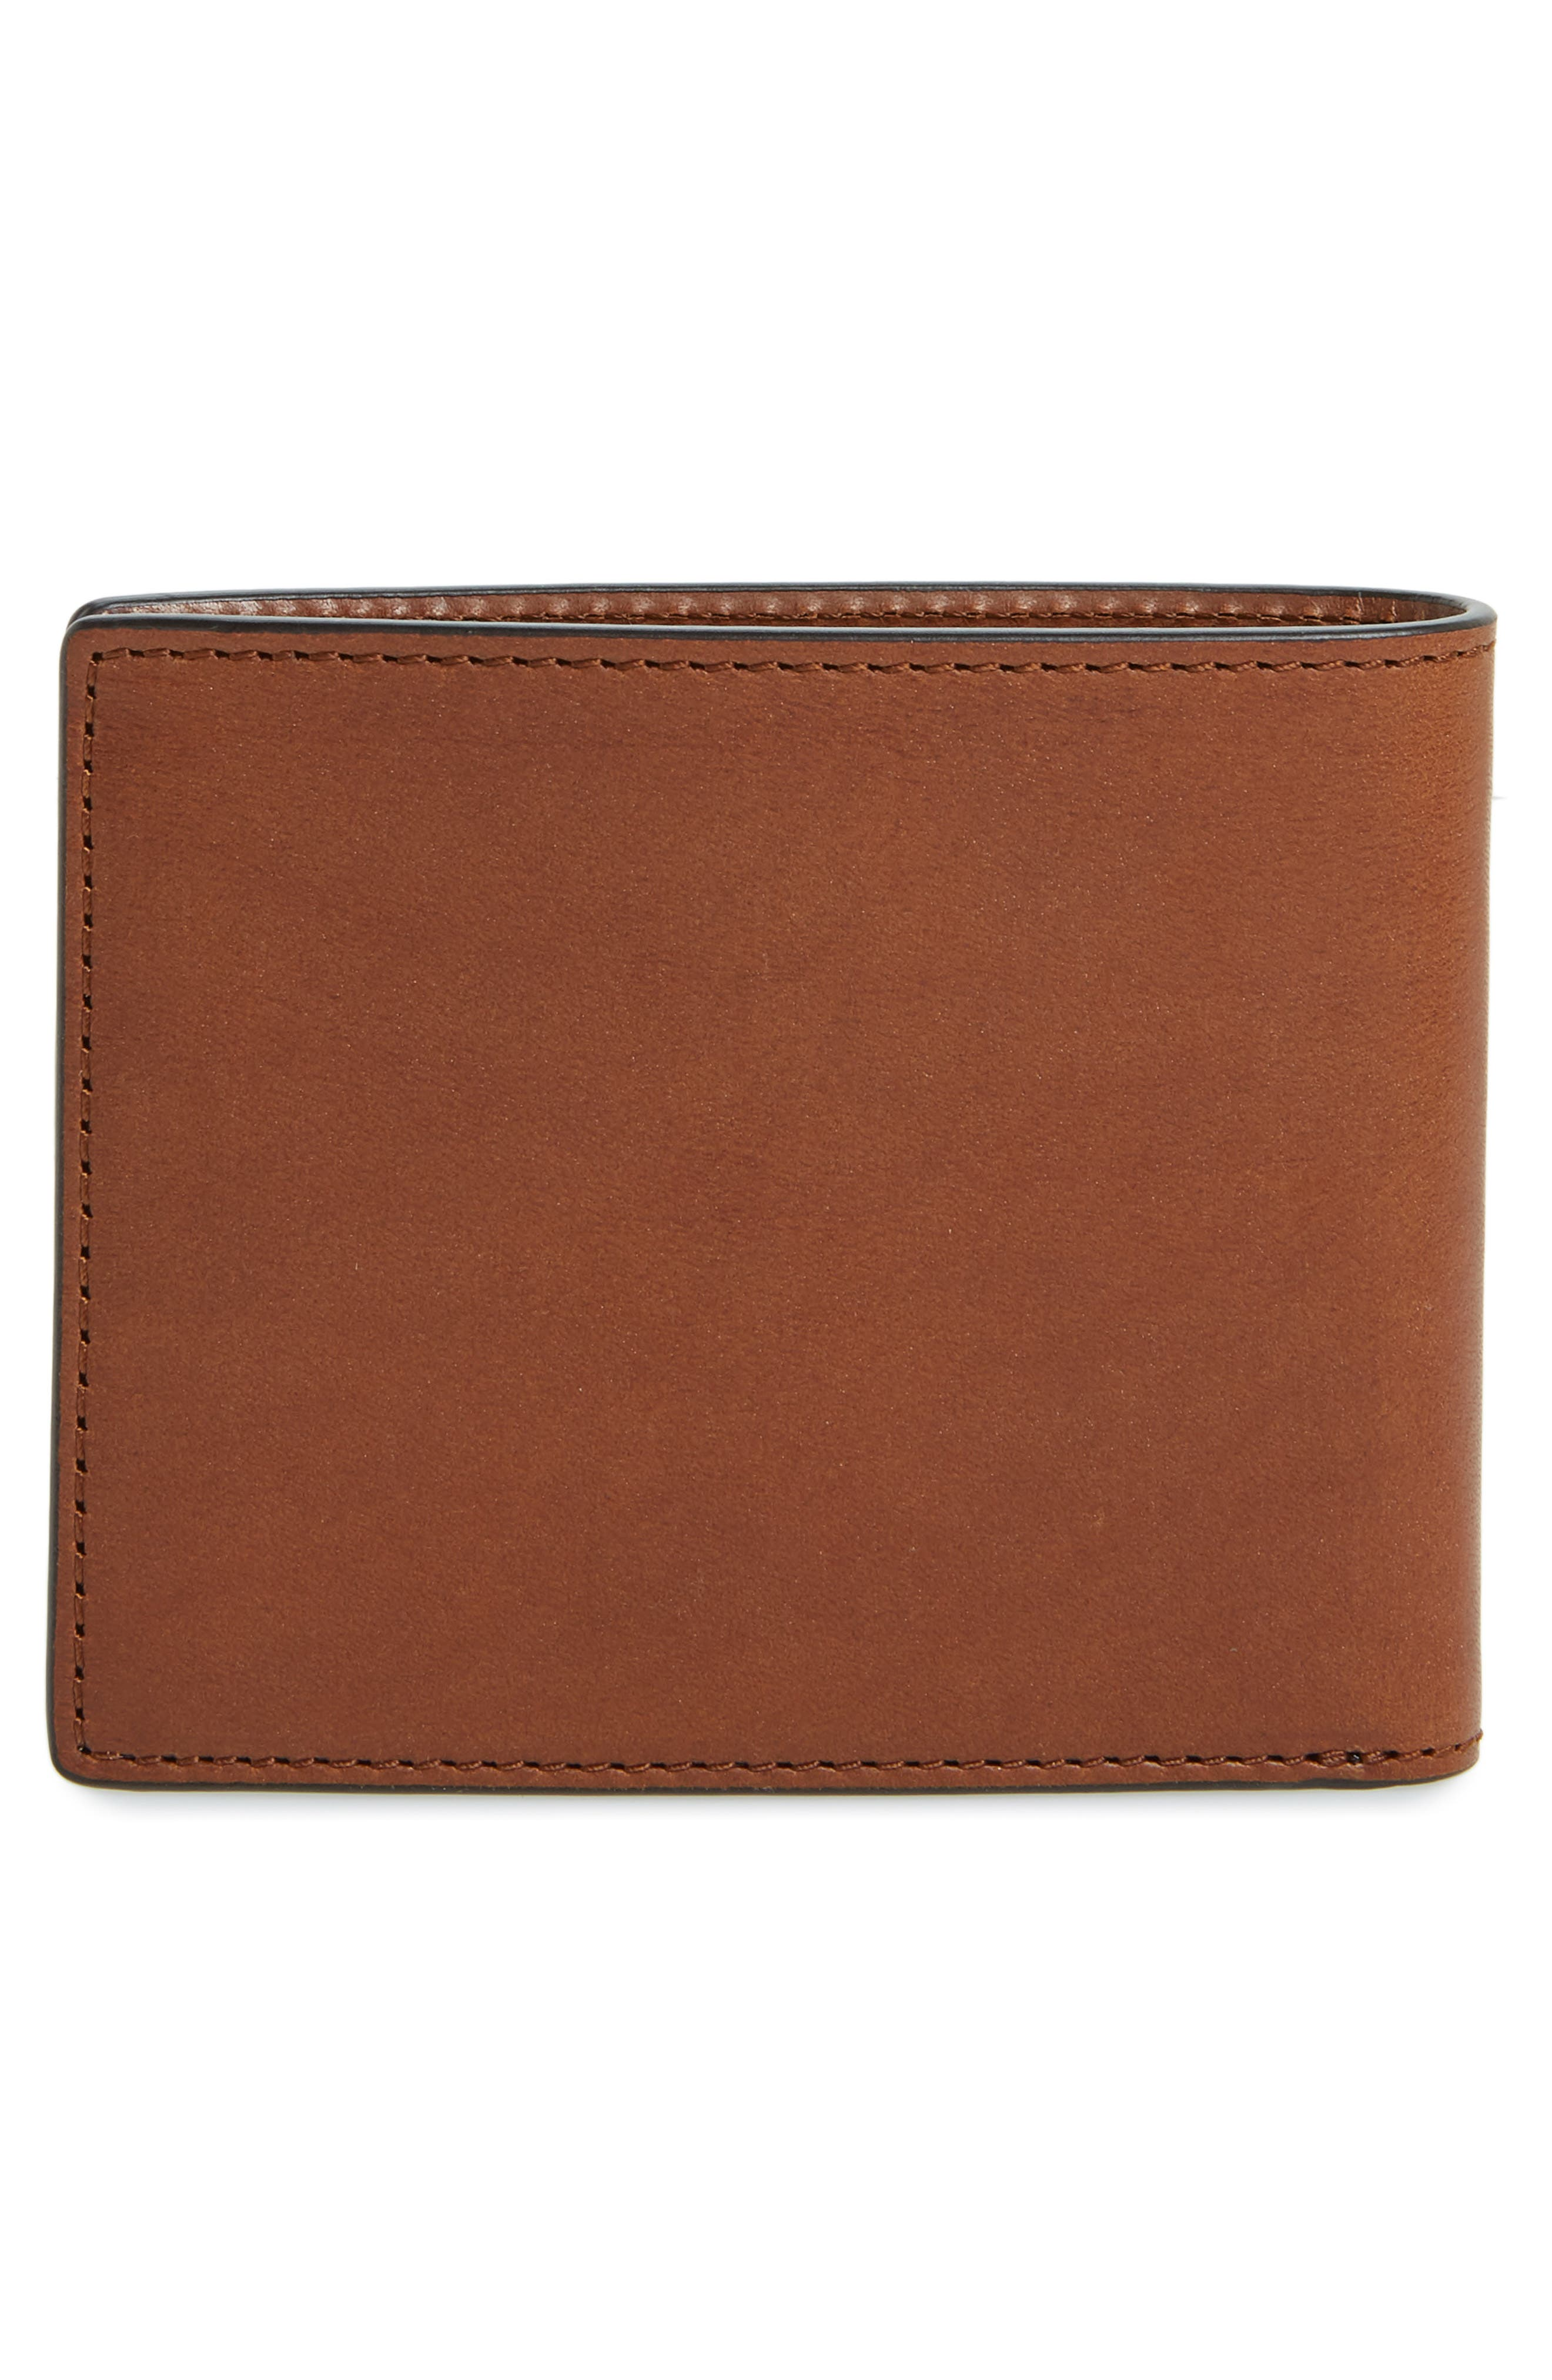 RAG & BONE, Hampshire Leather Bifold Wallet, Alternate thumbnail 3, color, BROWN COMBO